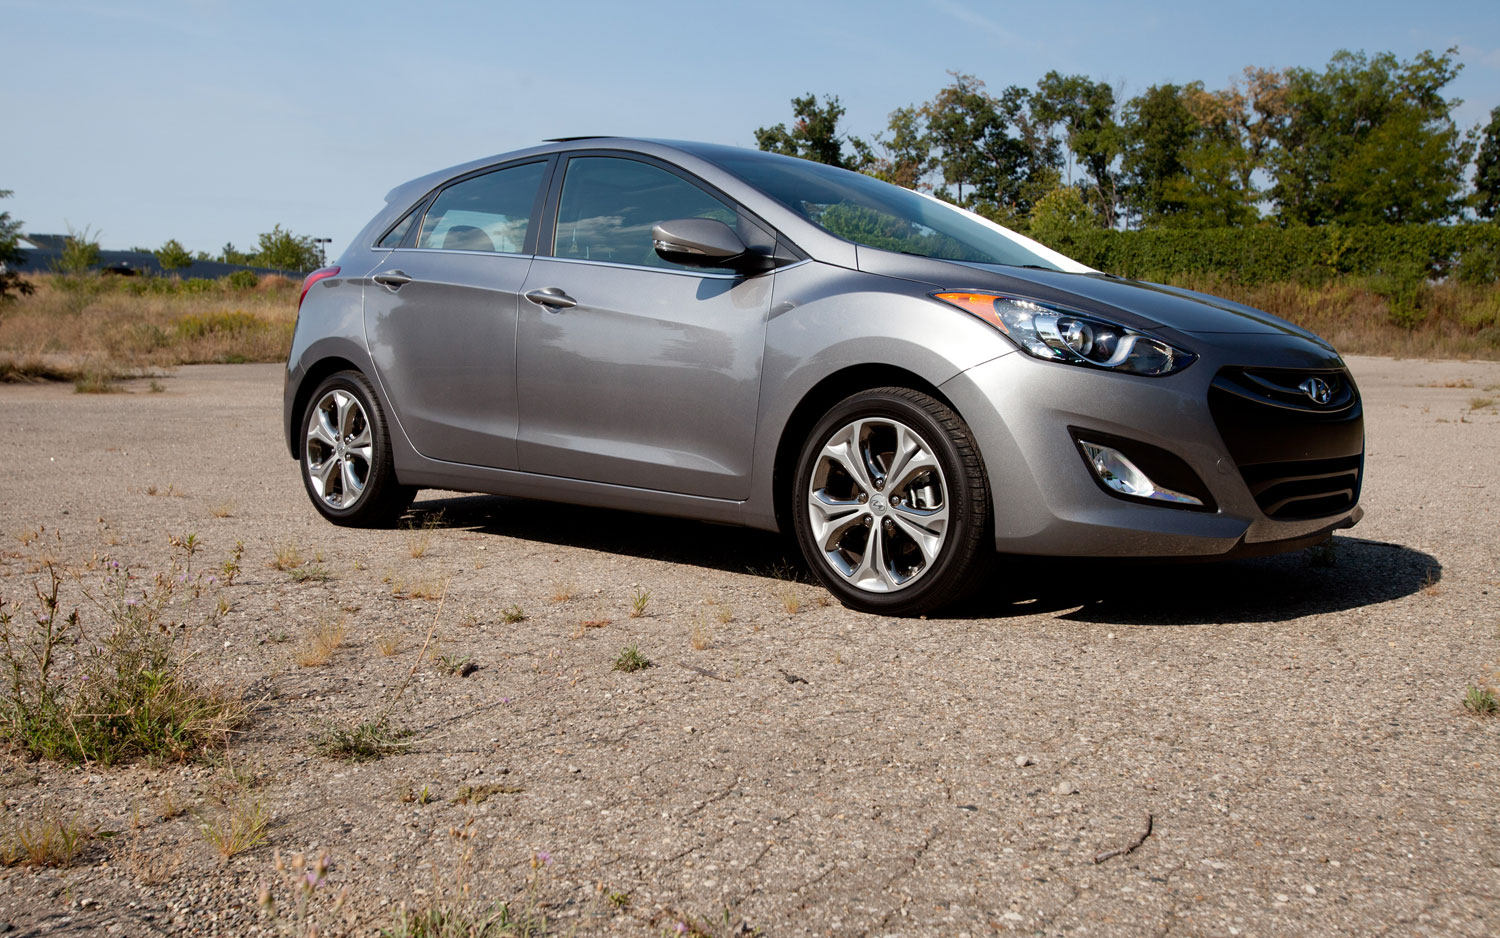 2013 Hyundai Elantra GT Front Right Side View1